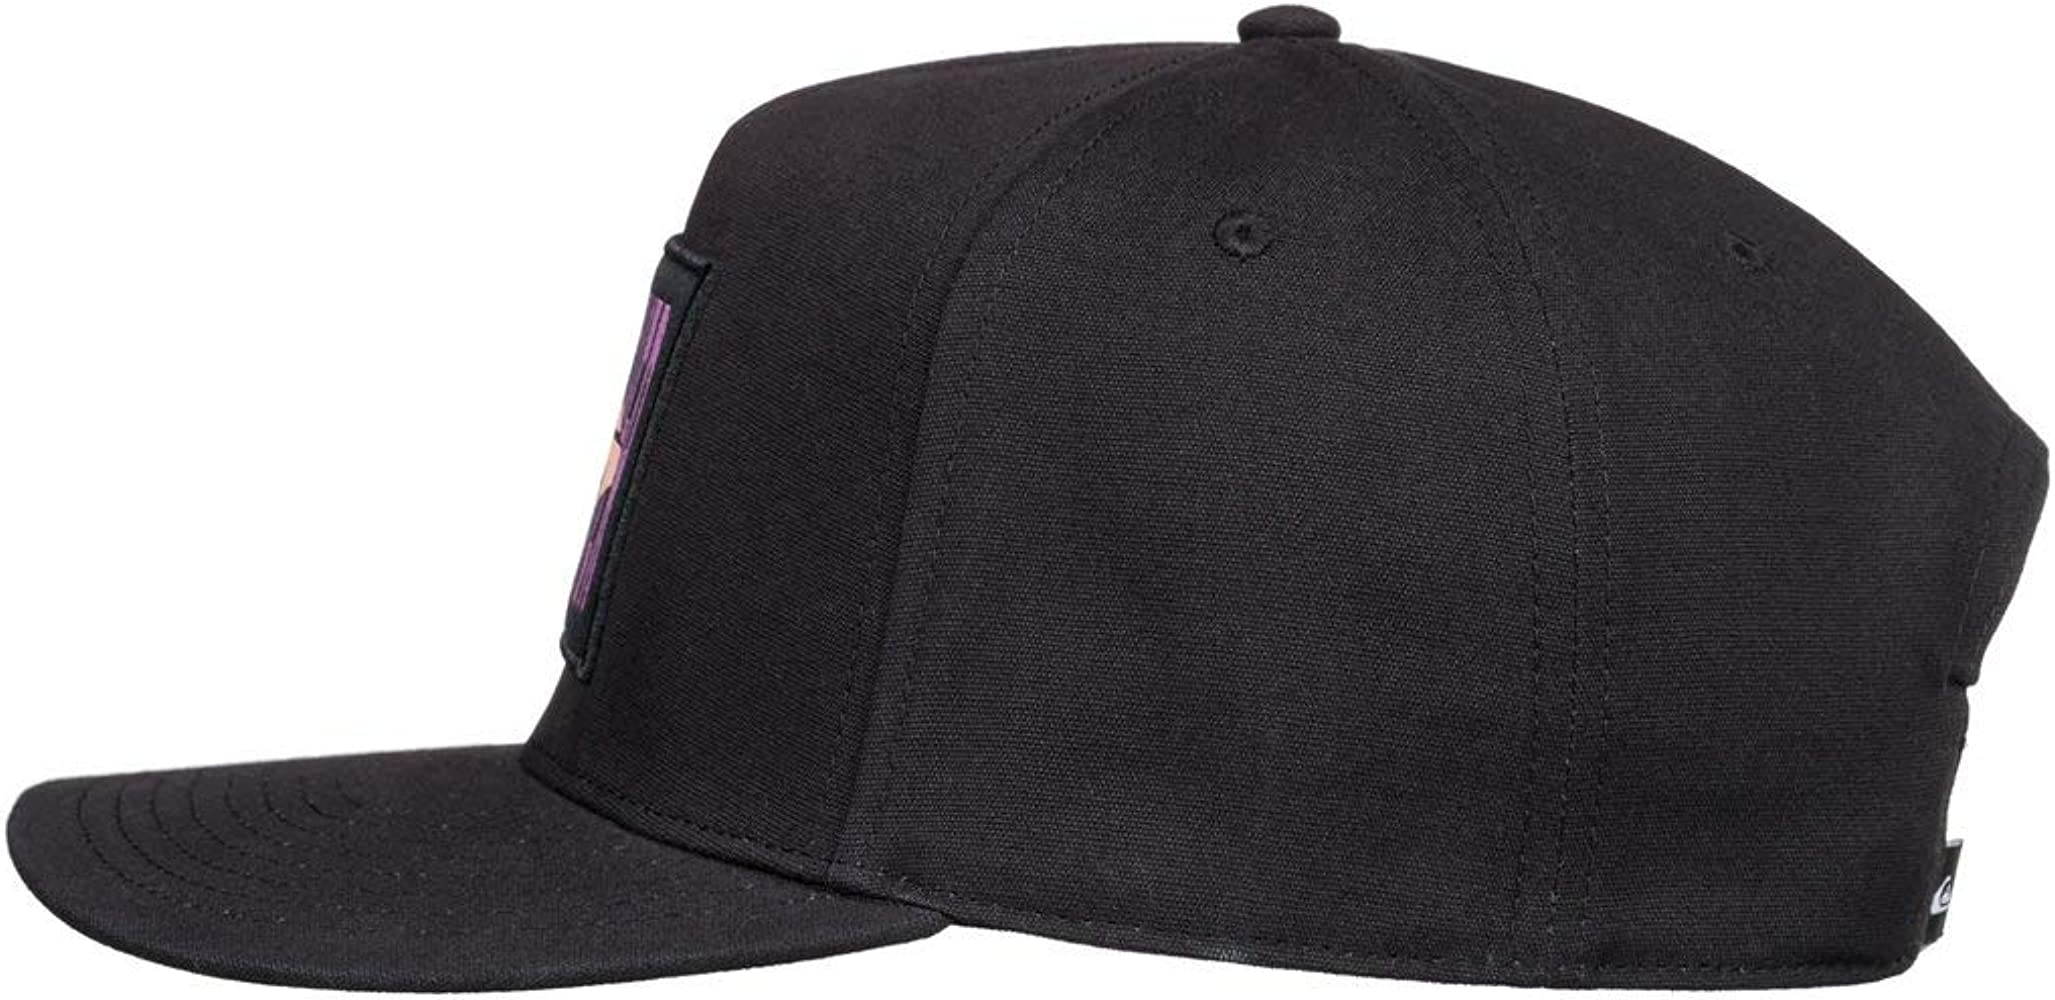 Quiksilver Brested Homme Casquette Snapback pour Homme Casquette Snapback